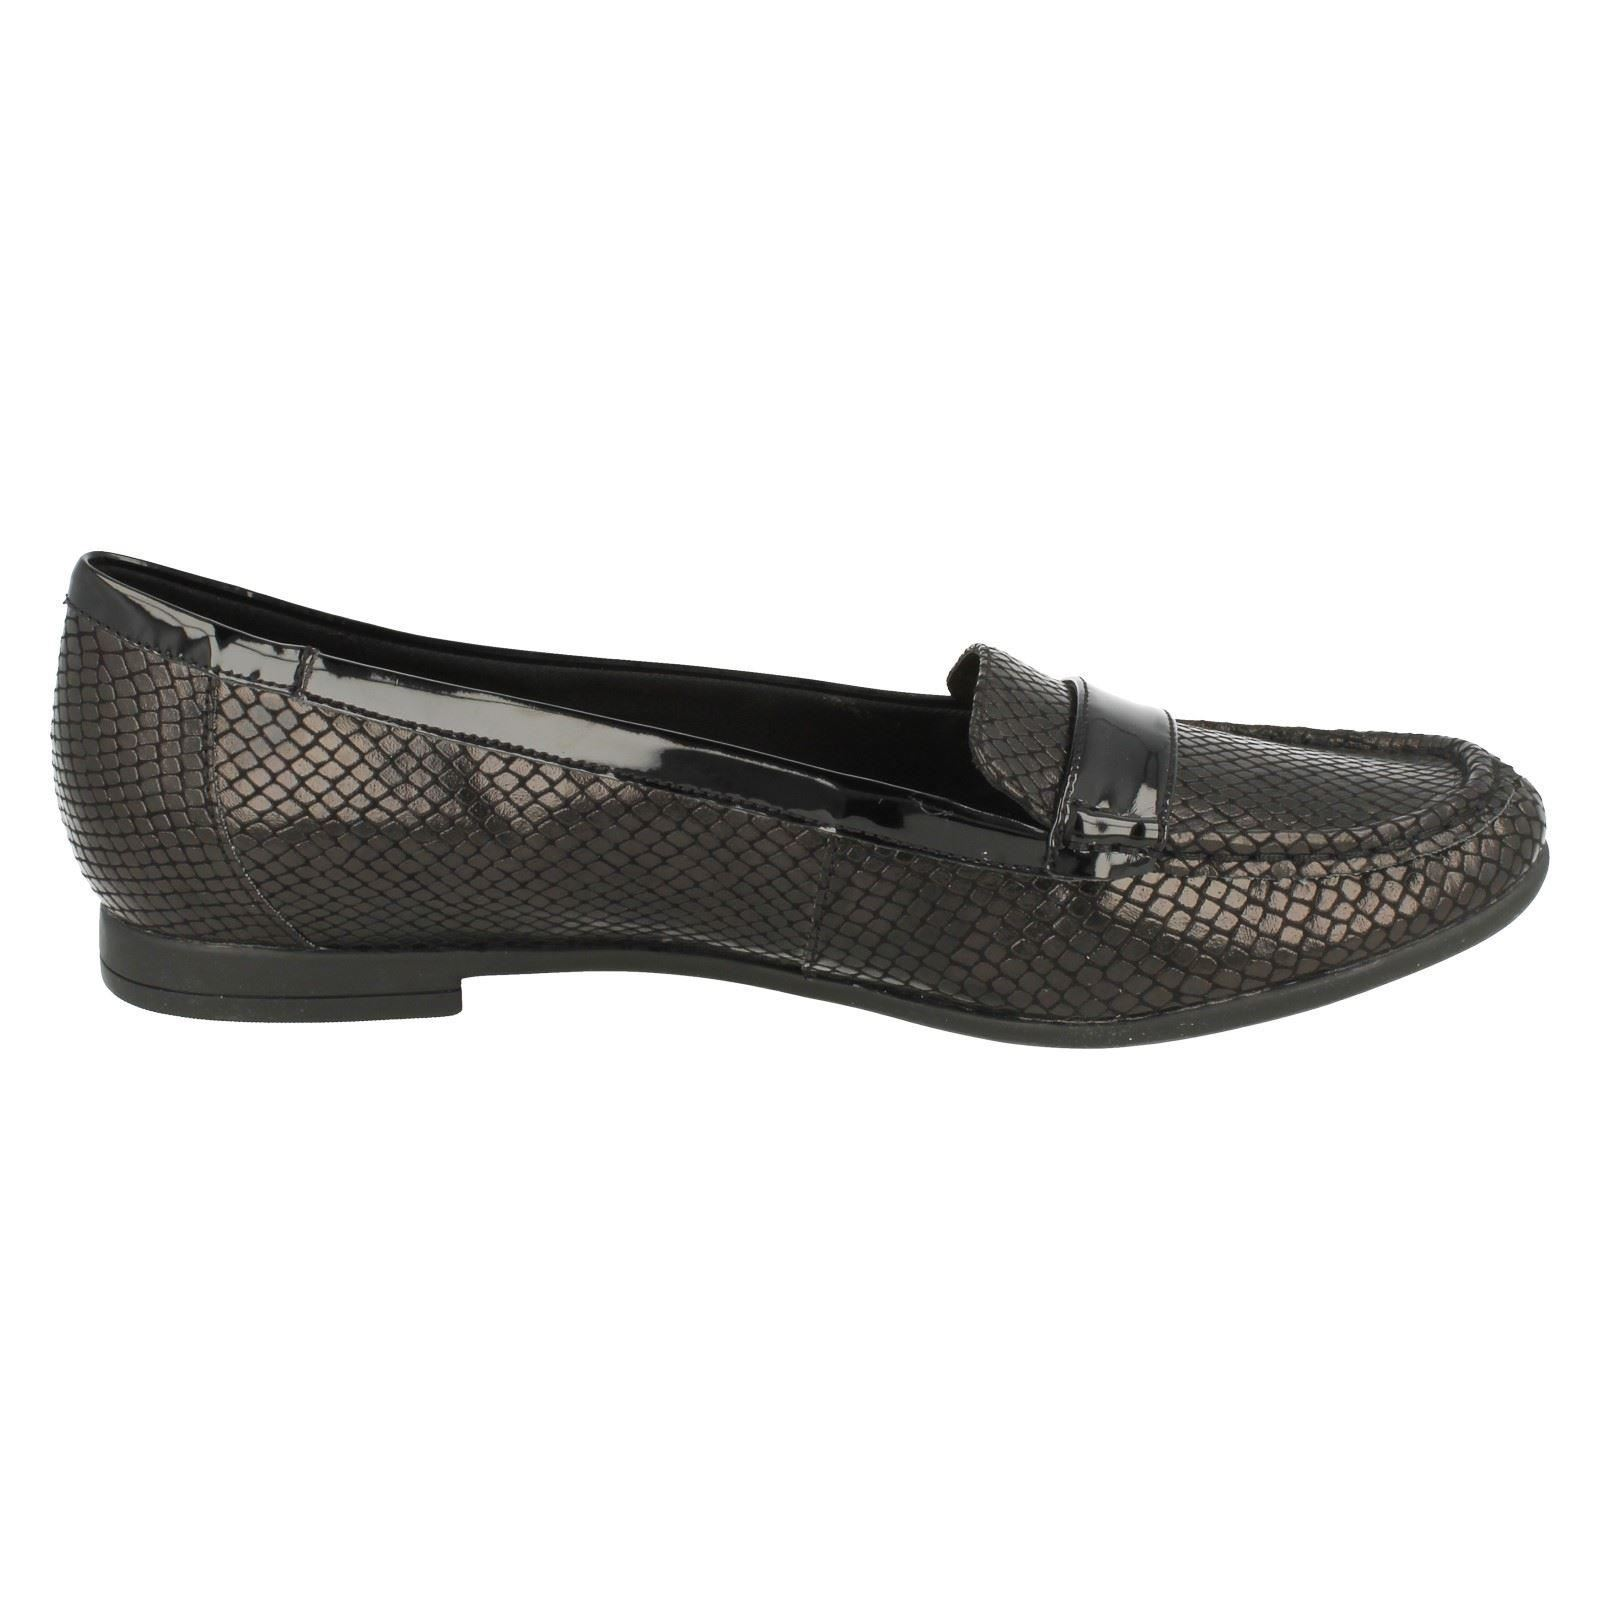 Atomic Lady /'Ladies Clarks/' Smart Slip On Loafers